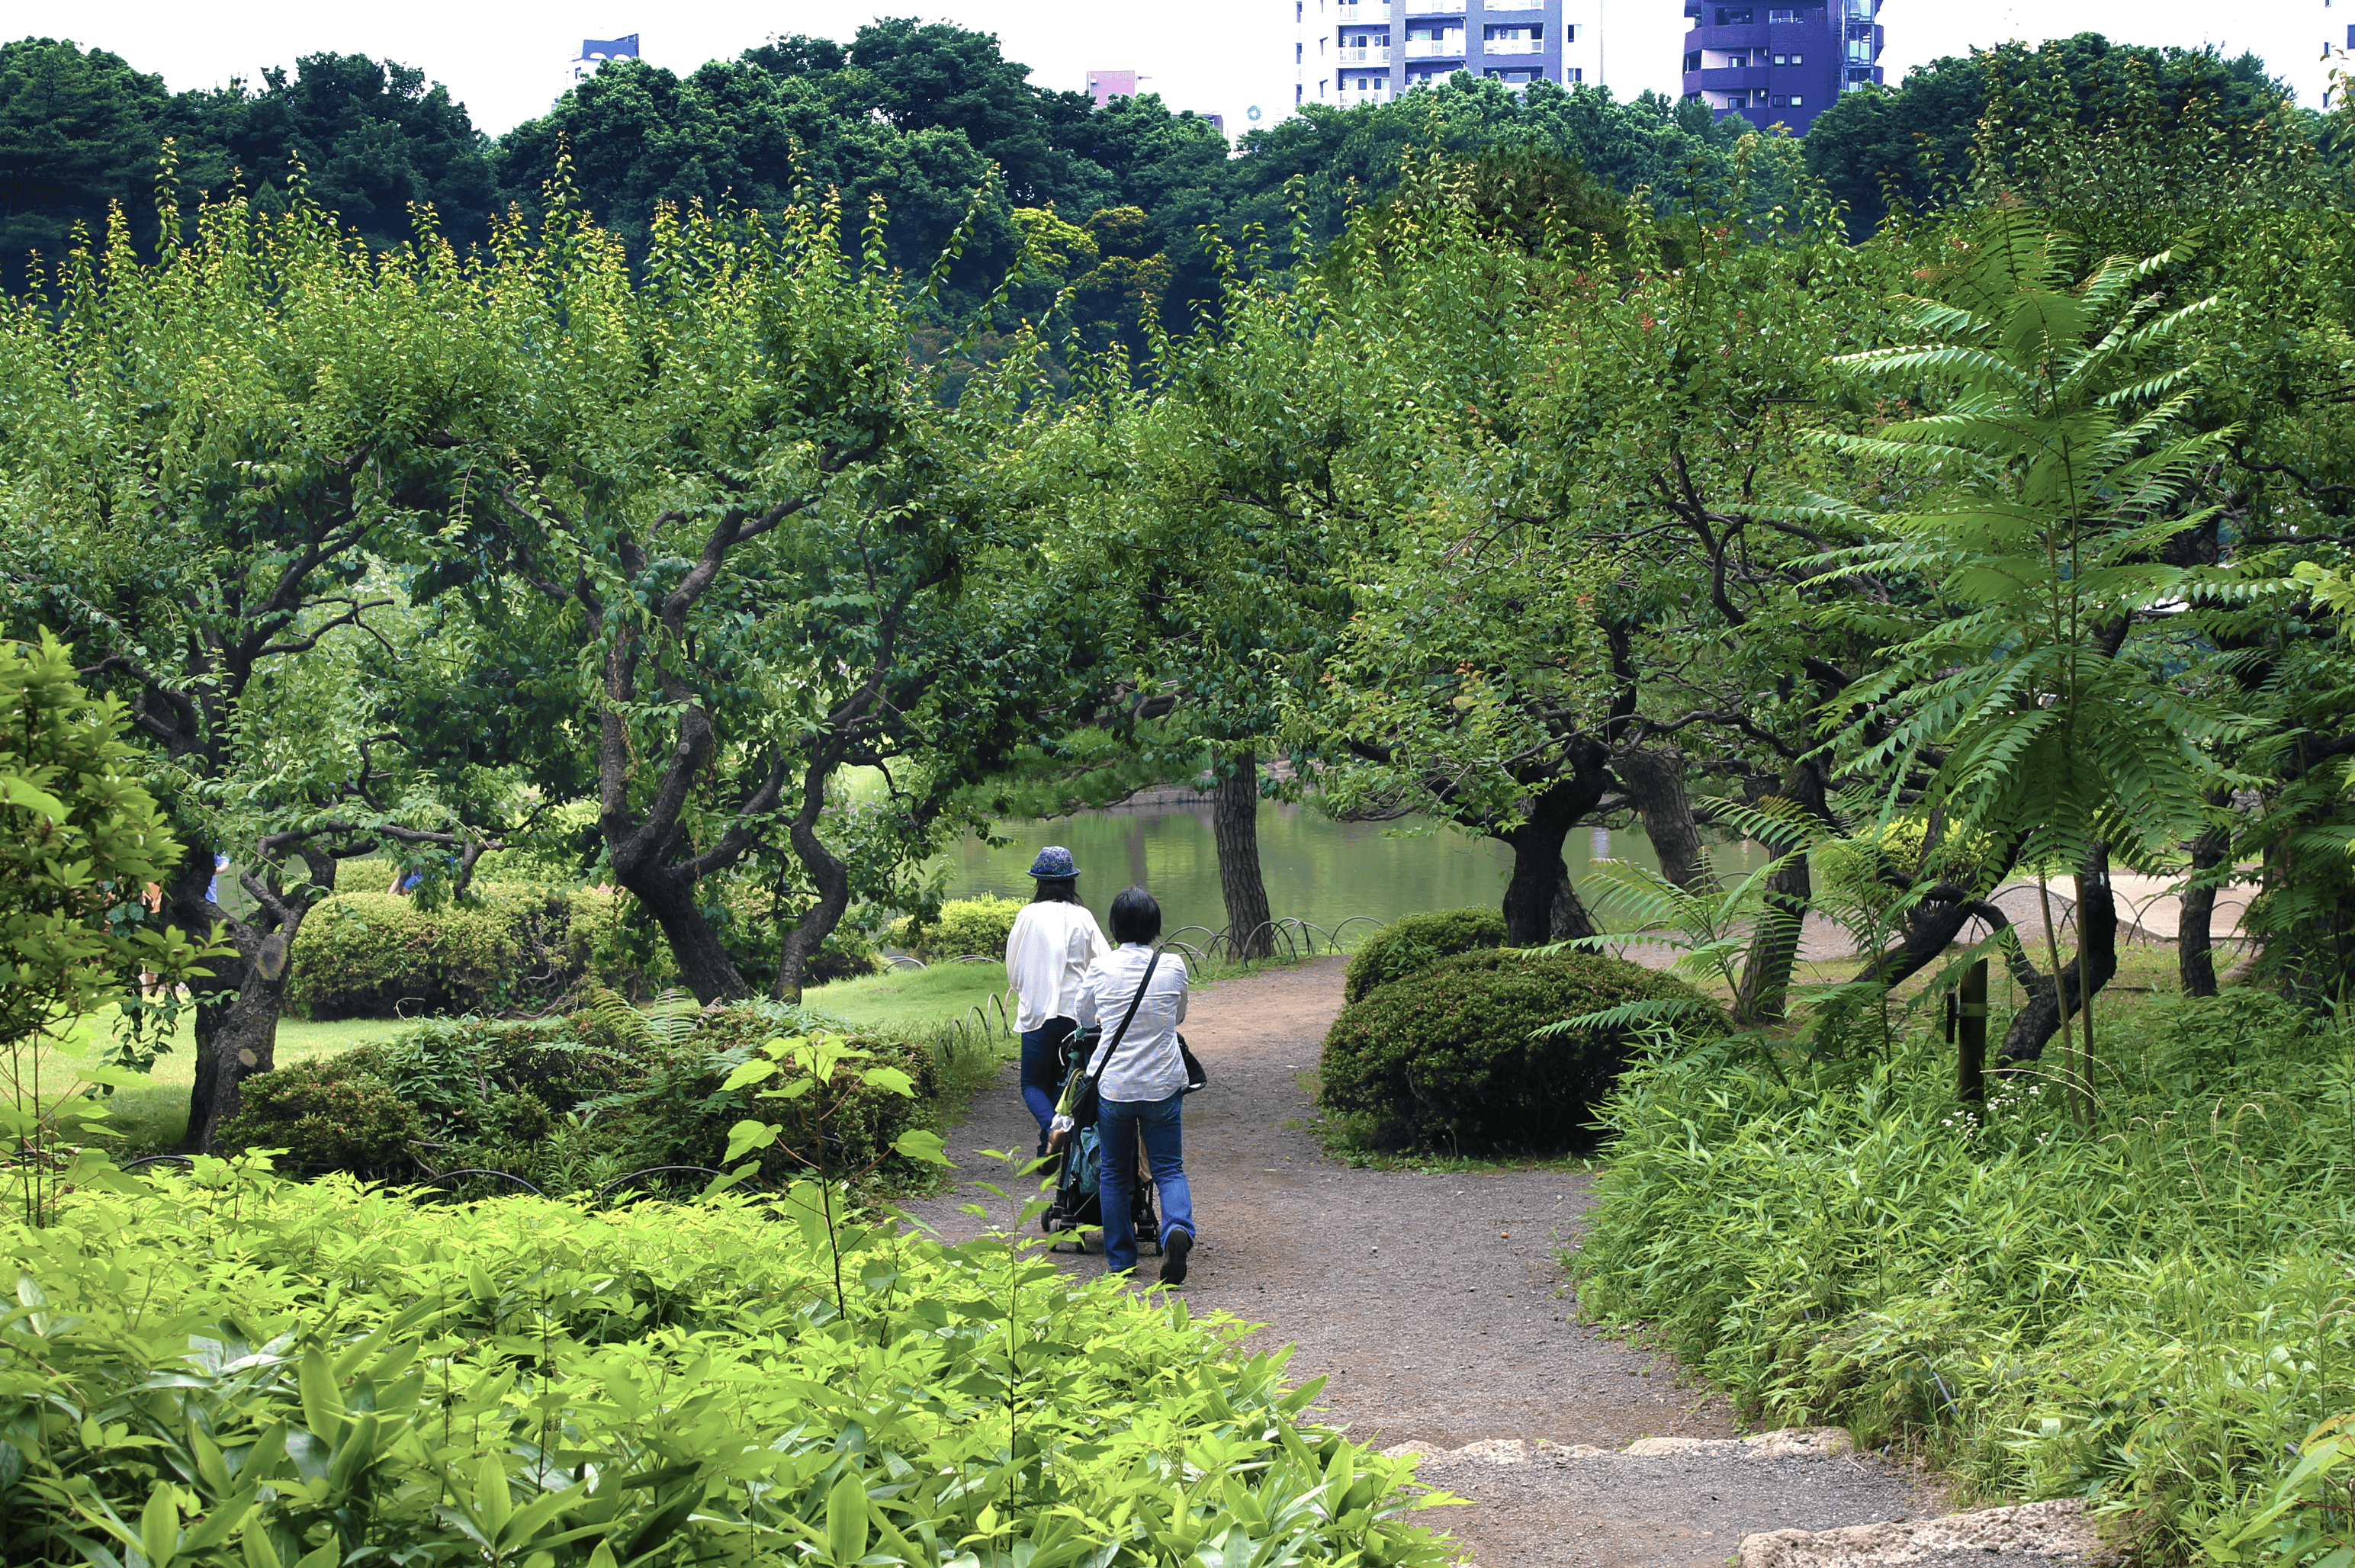 HQ Shinjuku Gyoen Garden Wallpapers | File 3858.29Kb